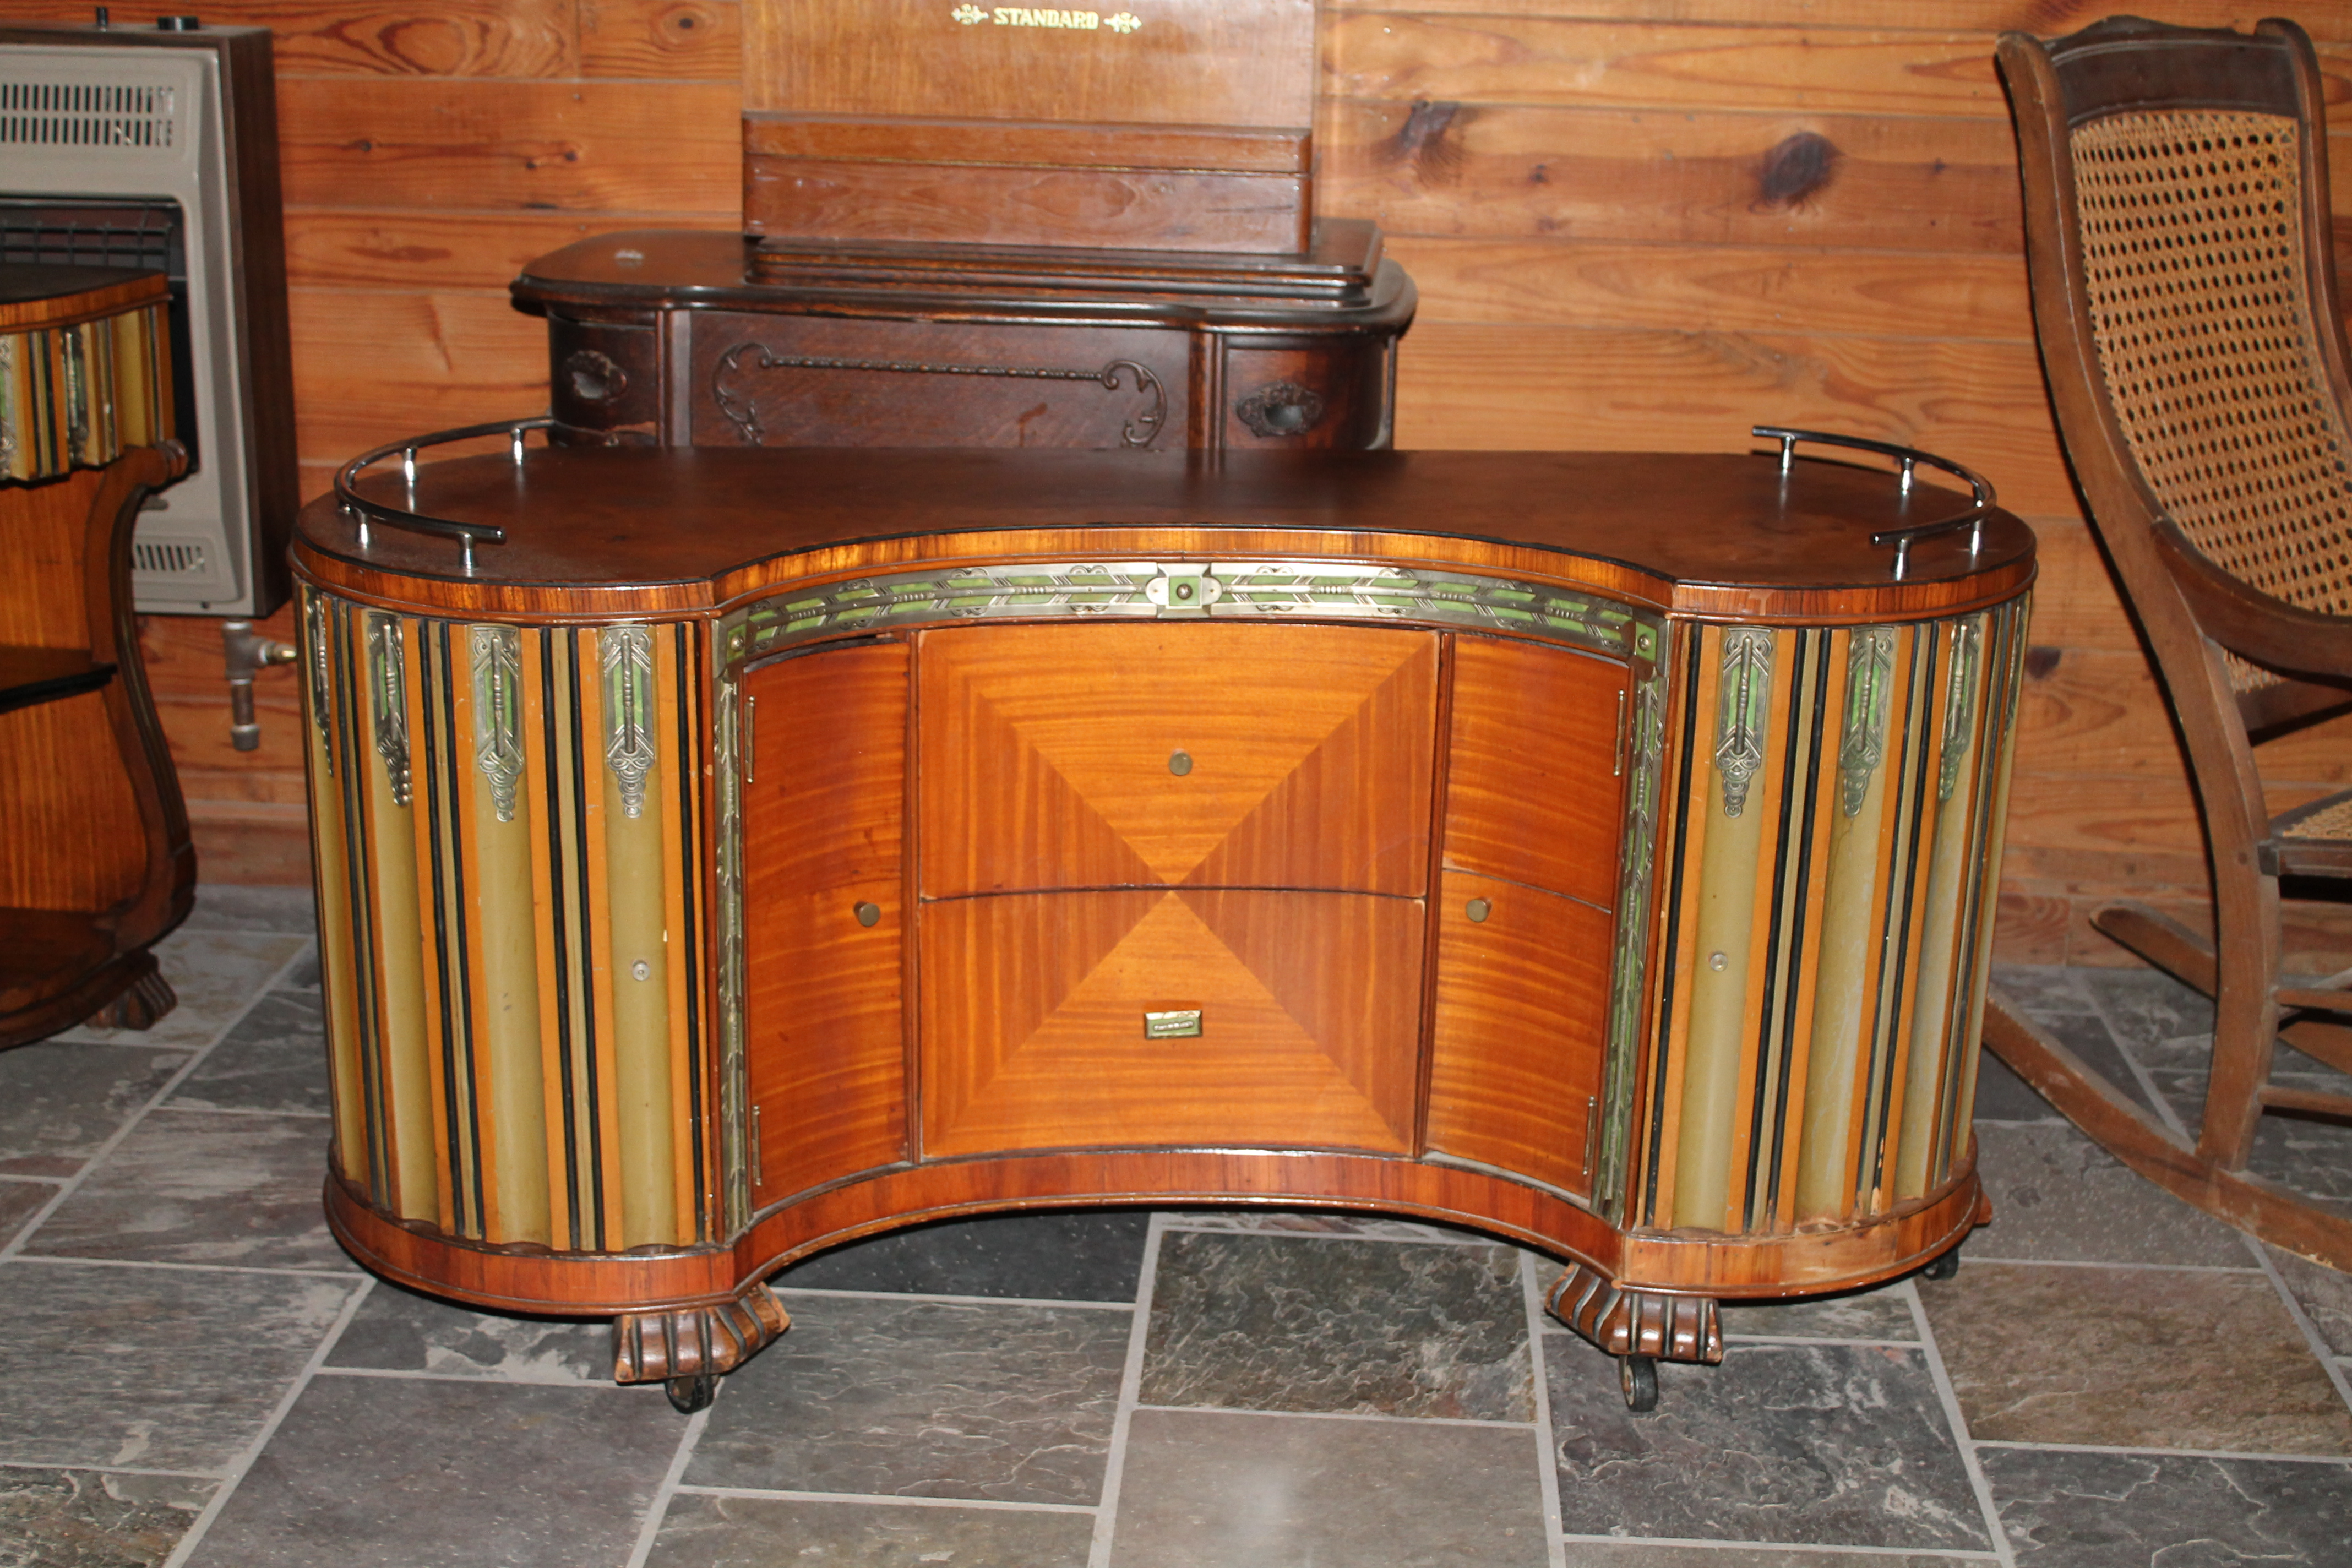 Art Deco Bedroom Set, Identify? - The eBay Community